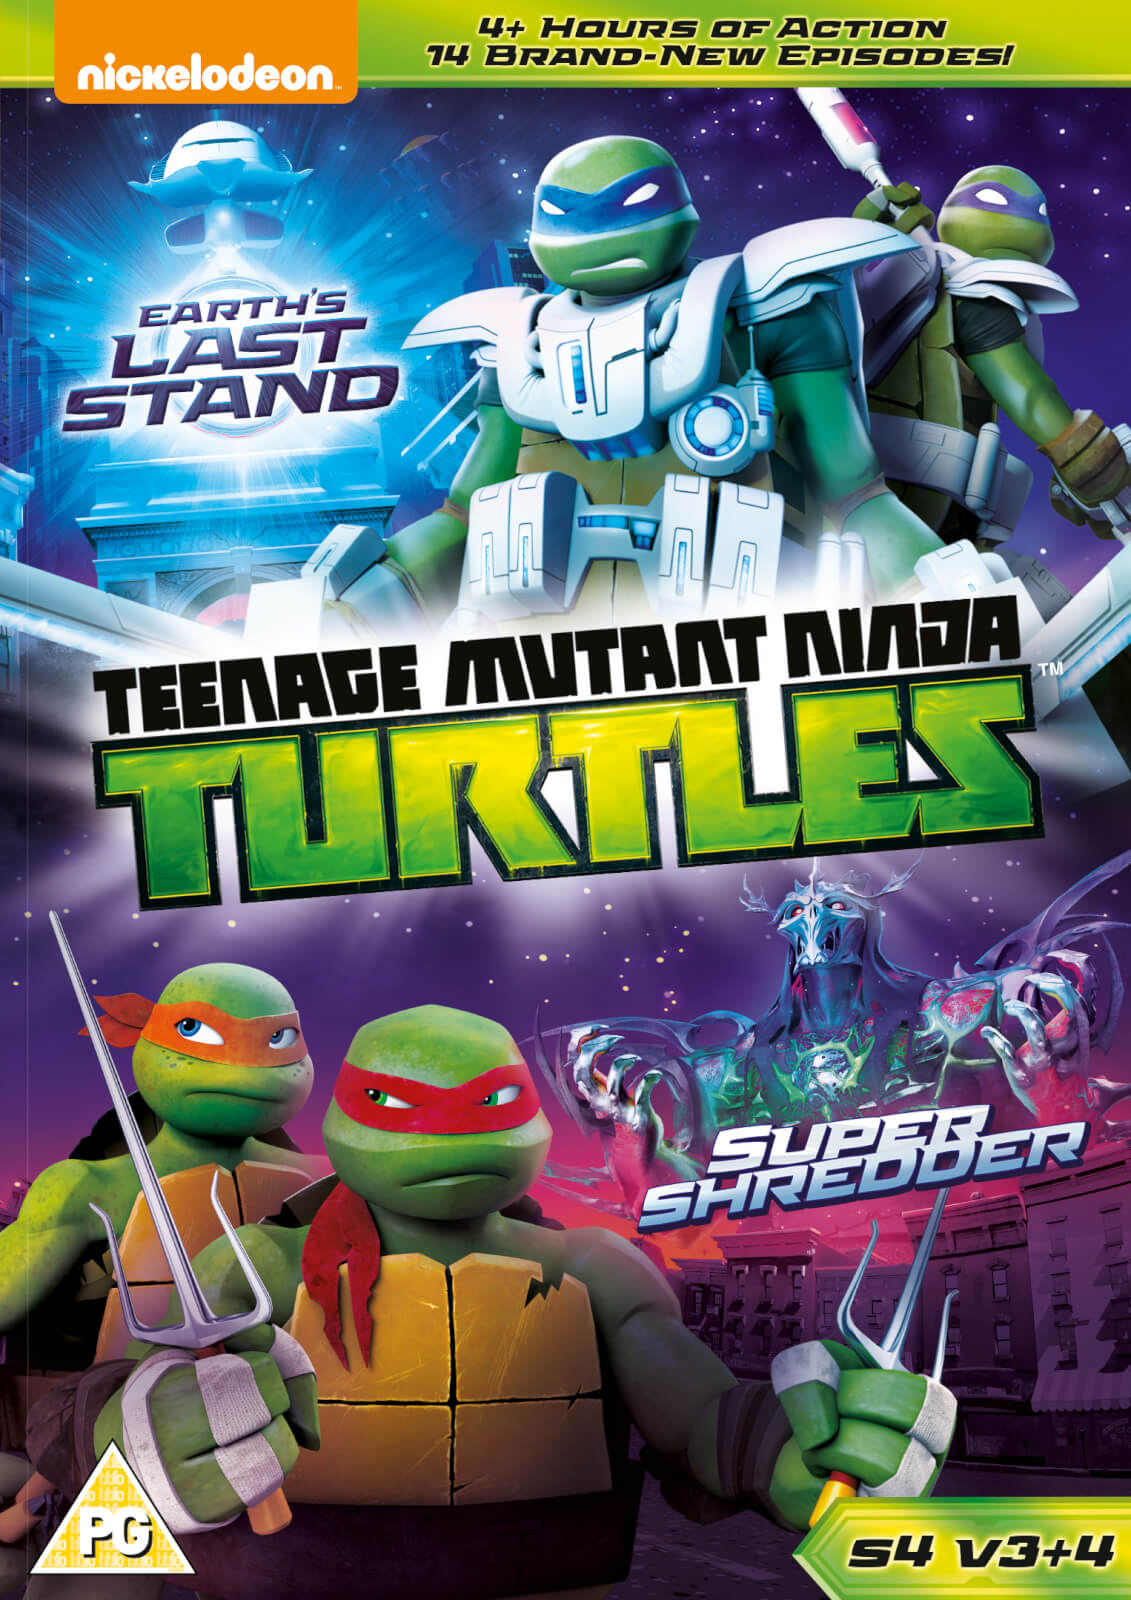 Teenage Mutant Ninja Turtles: Earth